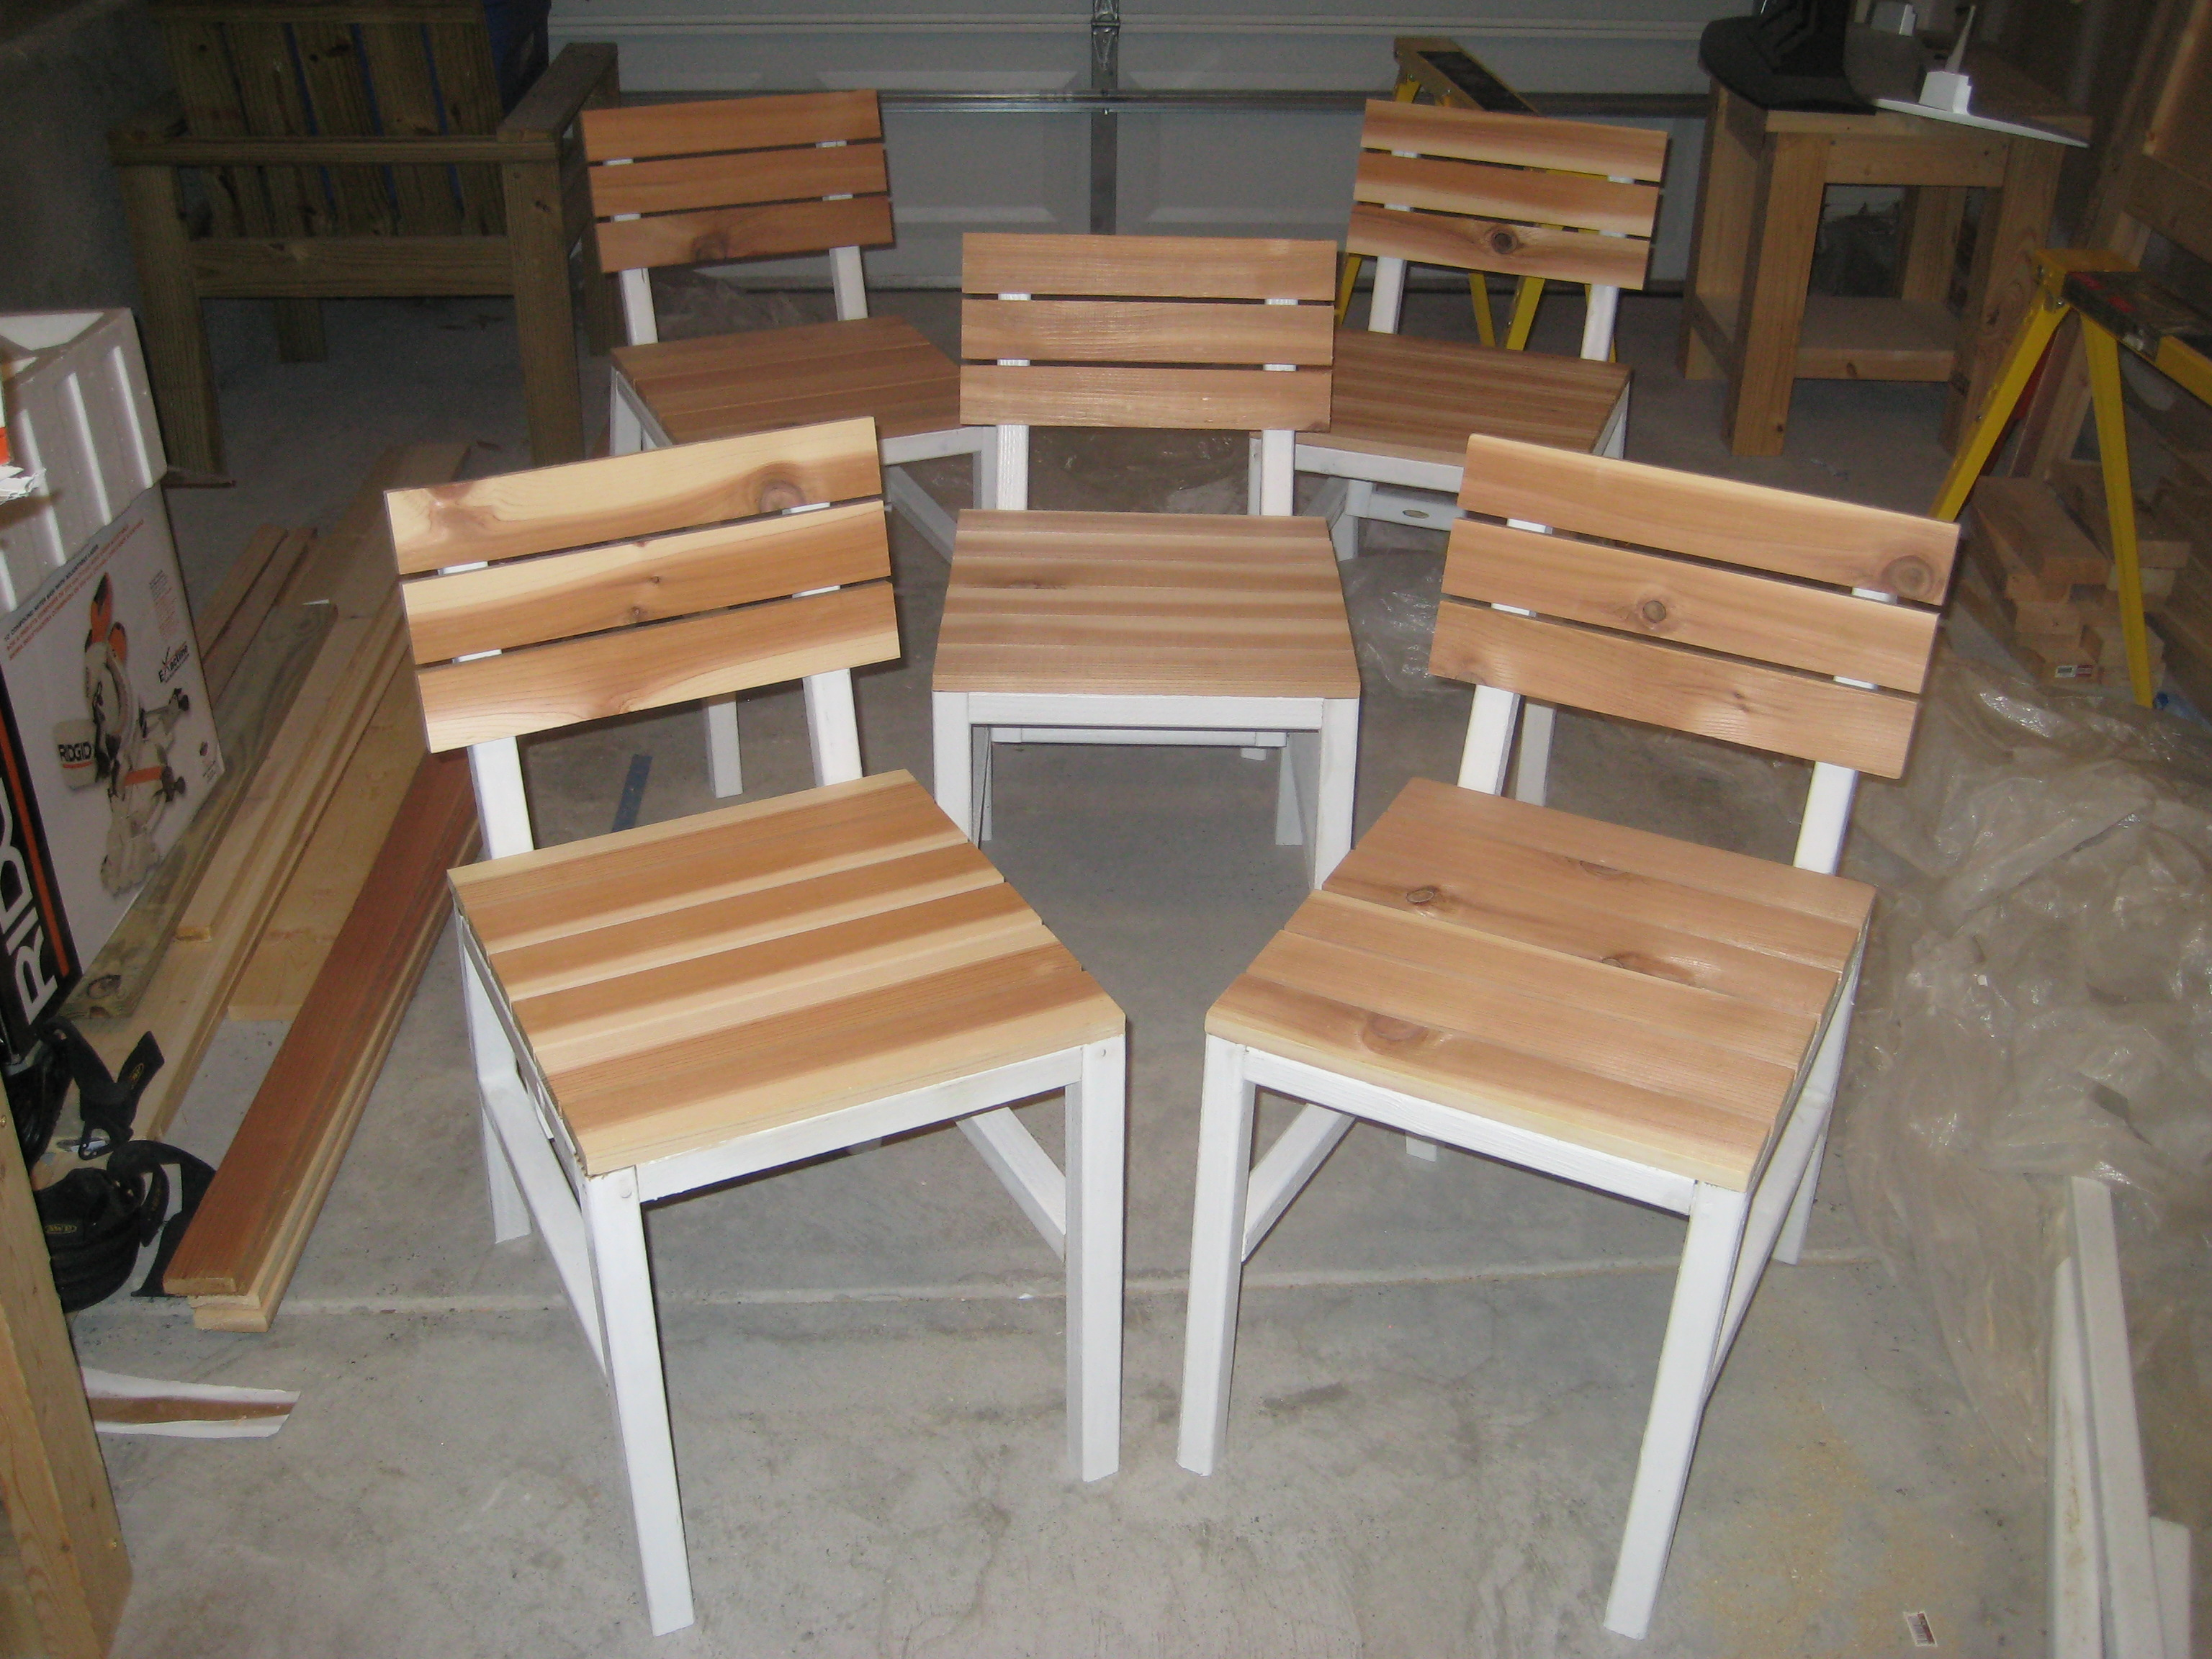 Diy Dining Chairs Ana White Harriet Outdoor Dining Chair With Cedar Slats